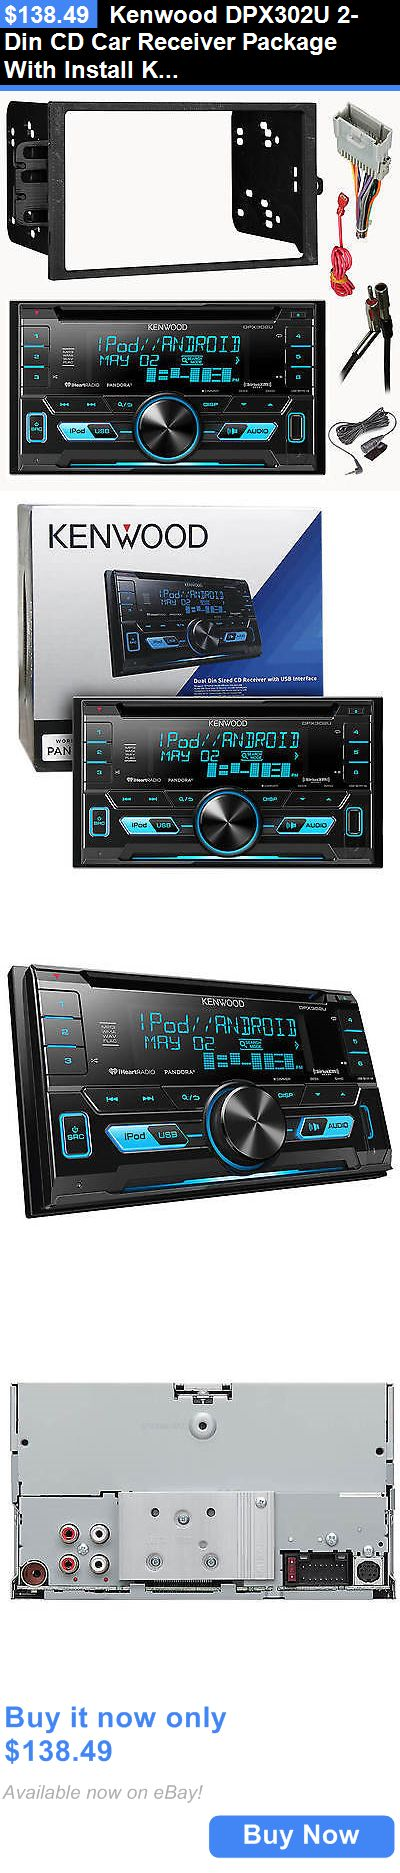 Car Audio In-Dash Units: Kenwood Dpx302u 2-Din Cd Car Receiver Package With Install Kit For Gm Vehicles BUY IT NOW ONLY: $138.49